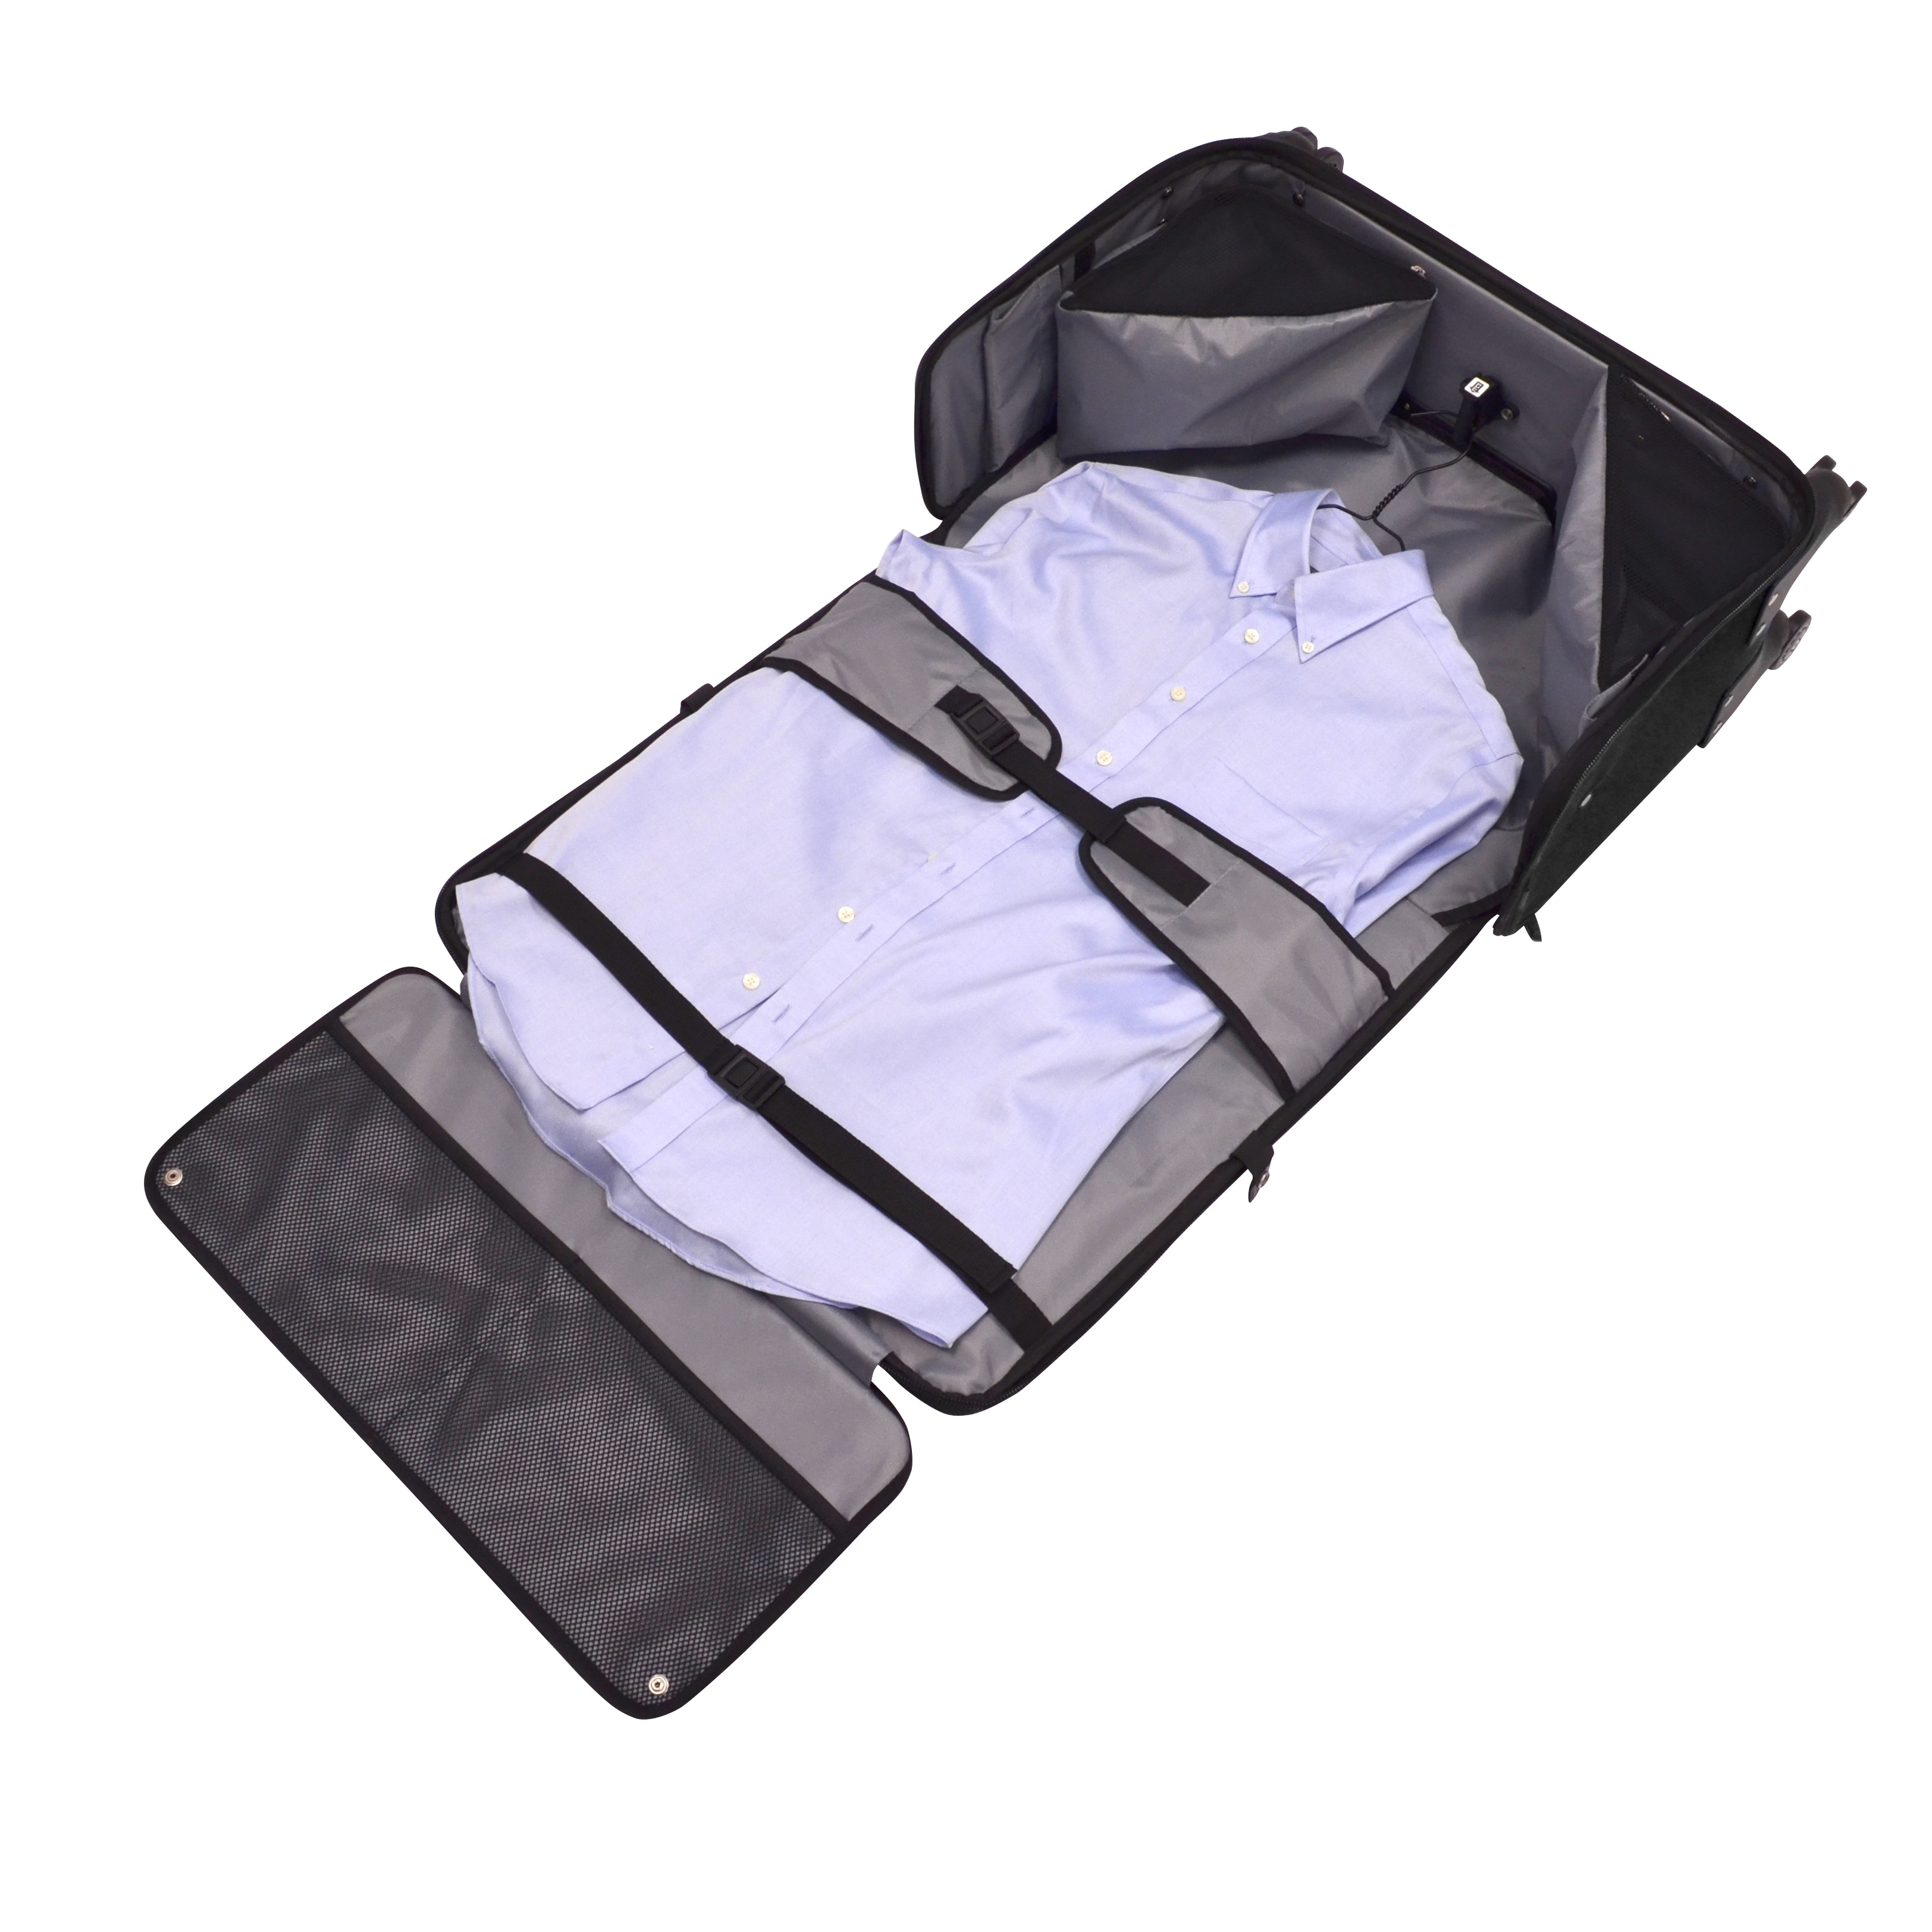 0cb8a9441f68 Shop U.S. Traveler by Traveler s Choice Stimson Carry-on Spinner Garment Bag  - Free Shipping Today - Overstock - 9283974